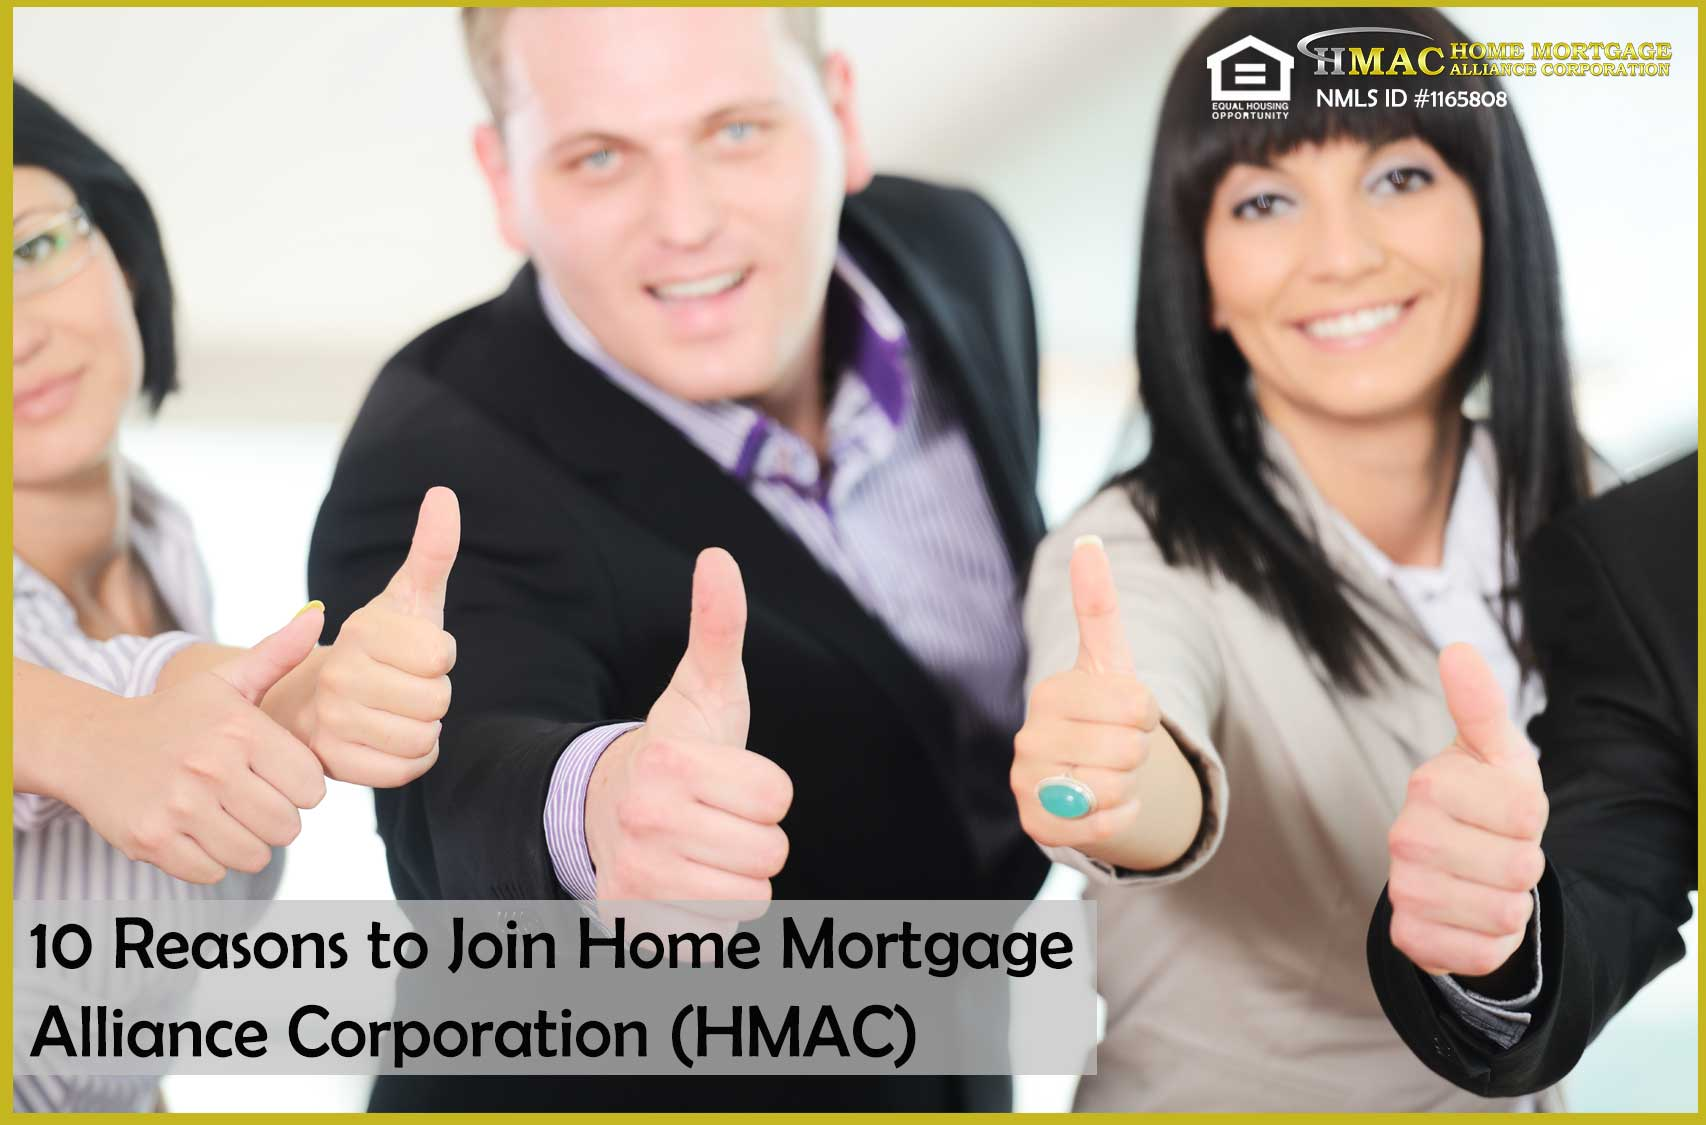 10 Reasons to Join Home Mortgage Alliance Corporation